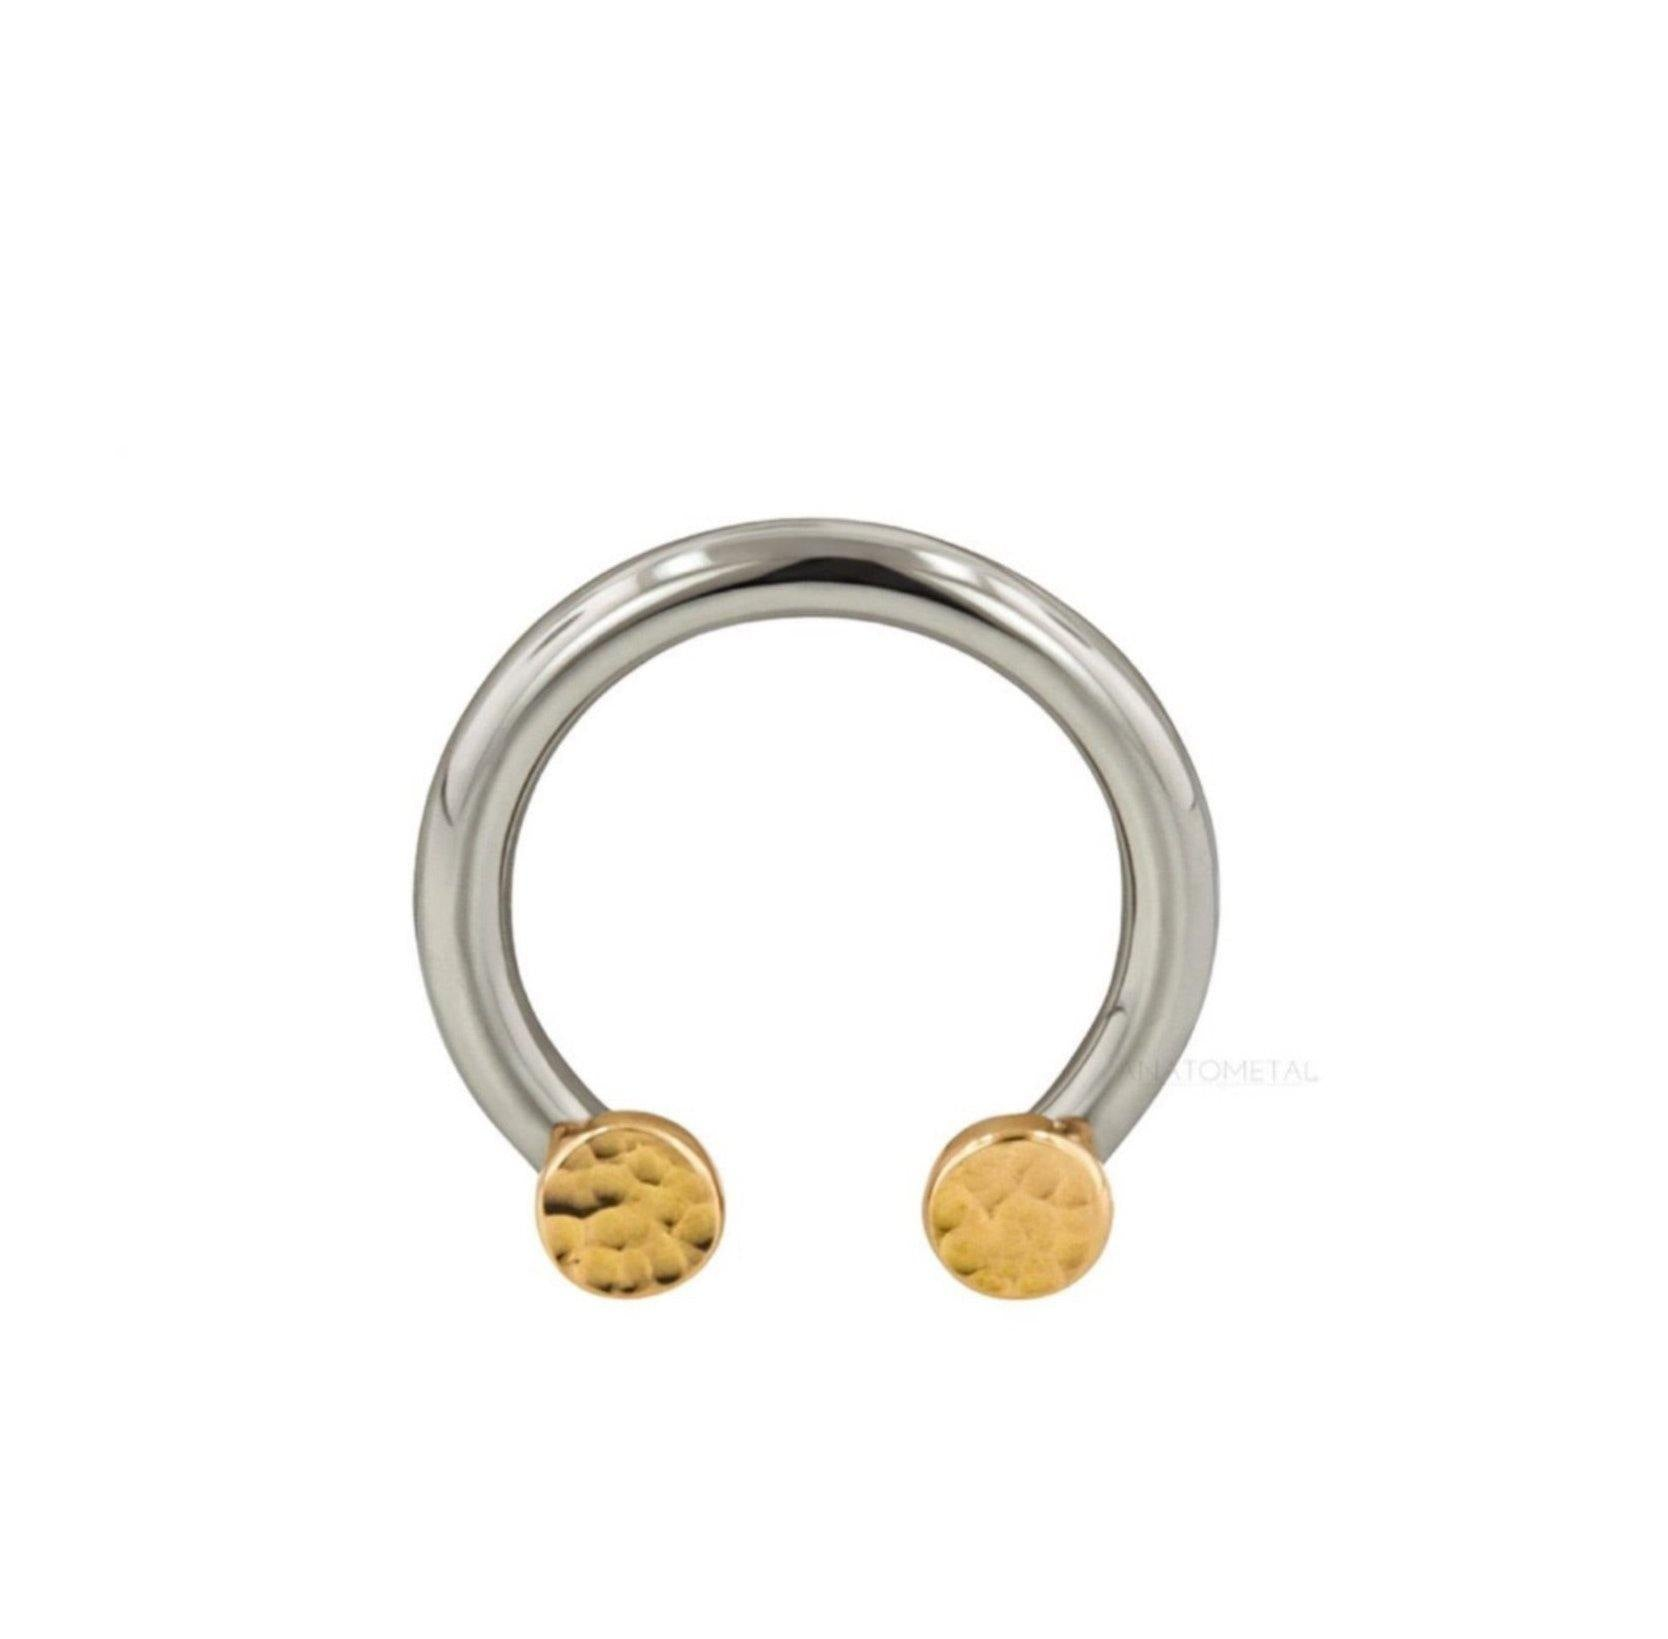 Ti Front set Circular Bar 2 Threads (Shaft Only) - Isha Body Jewellery